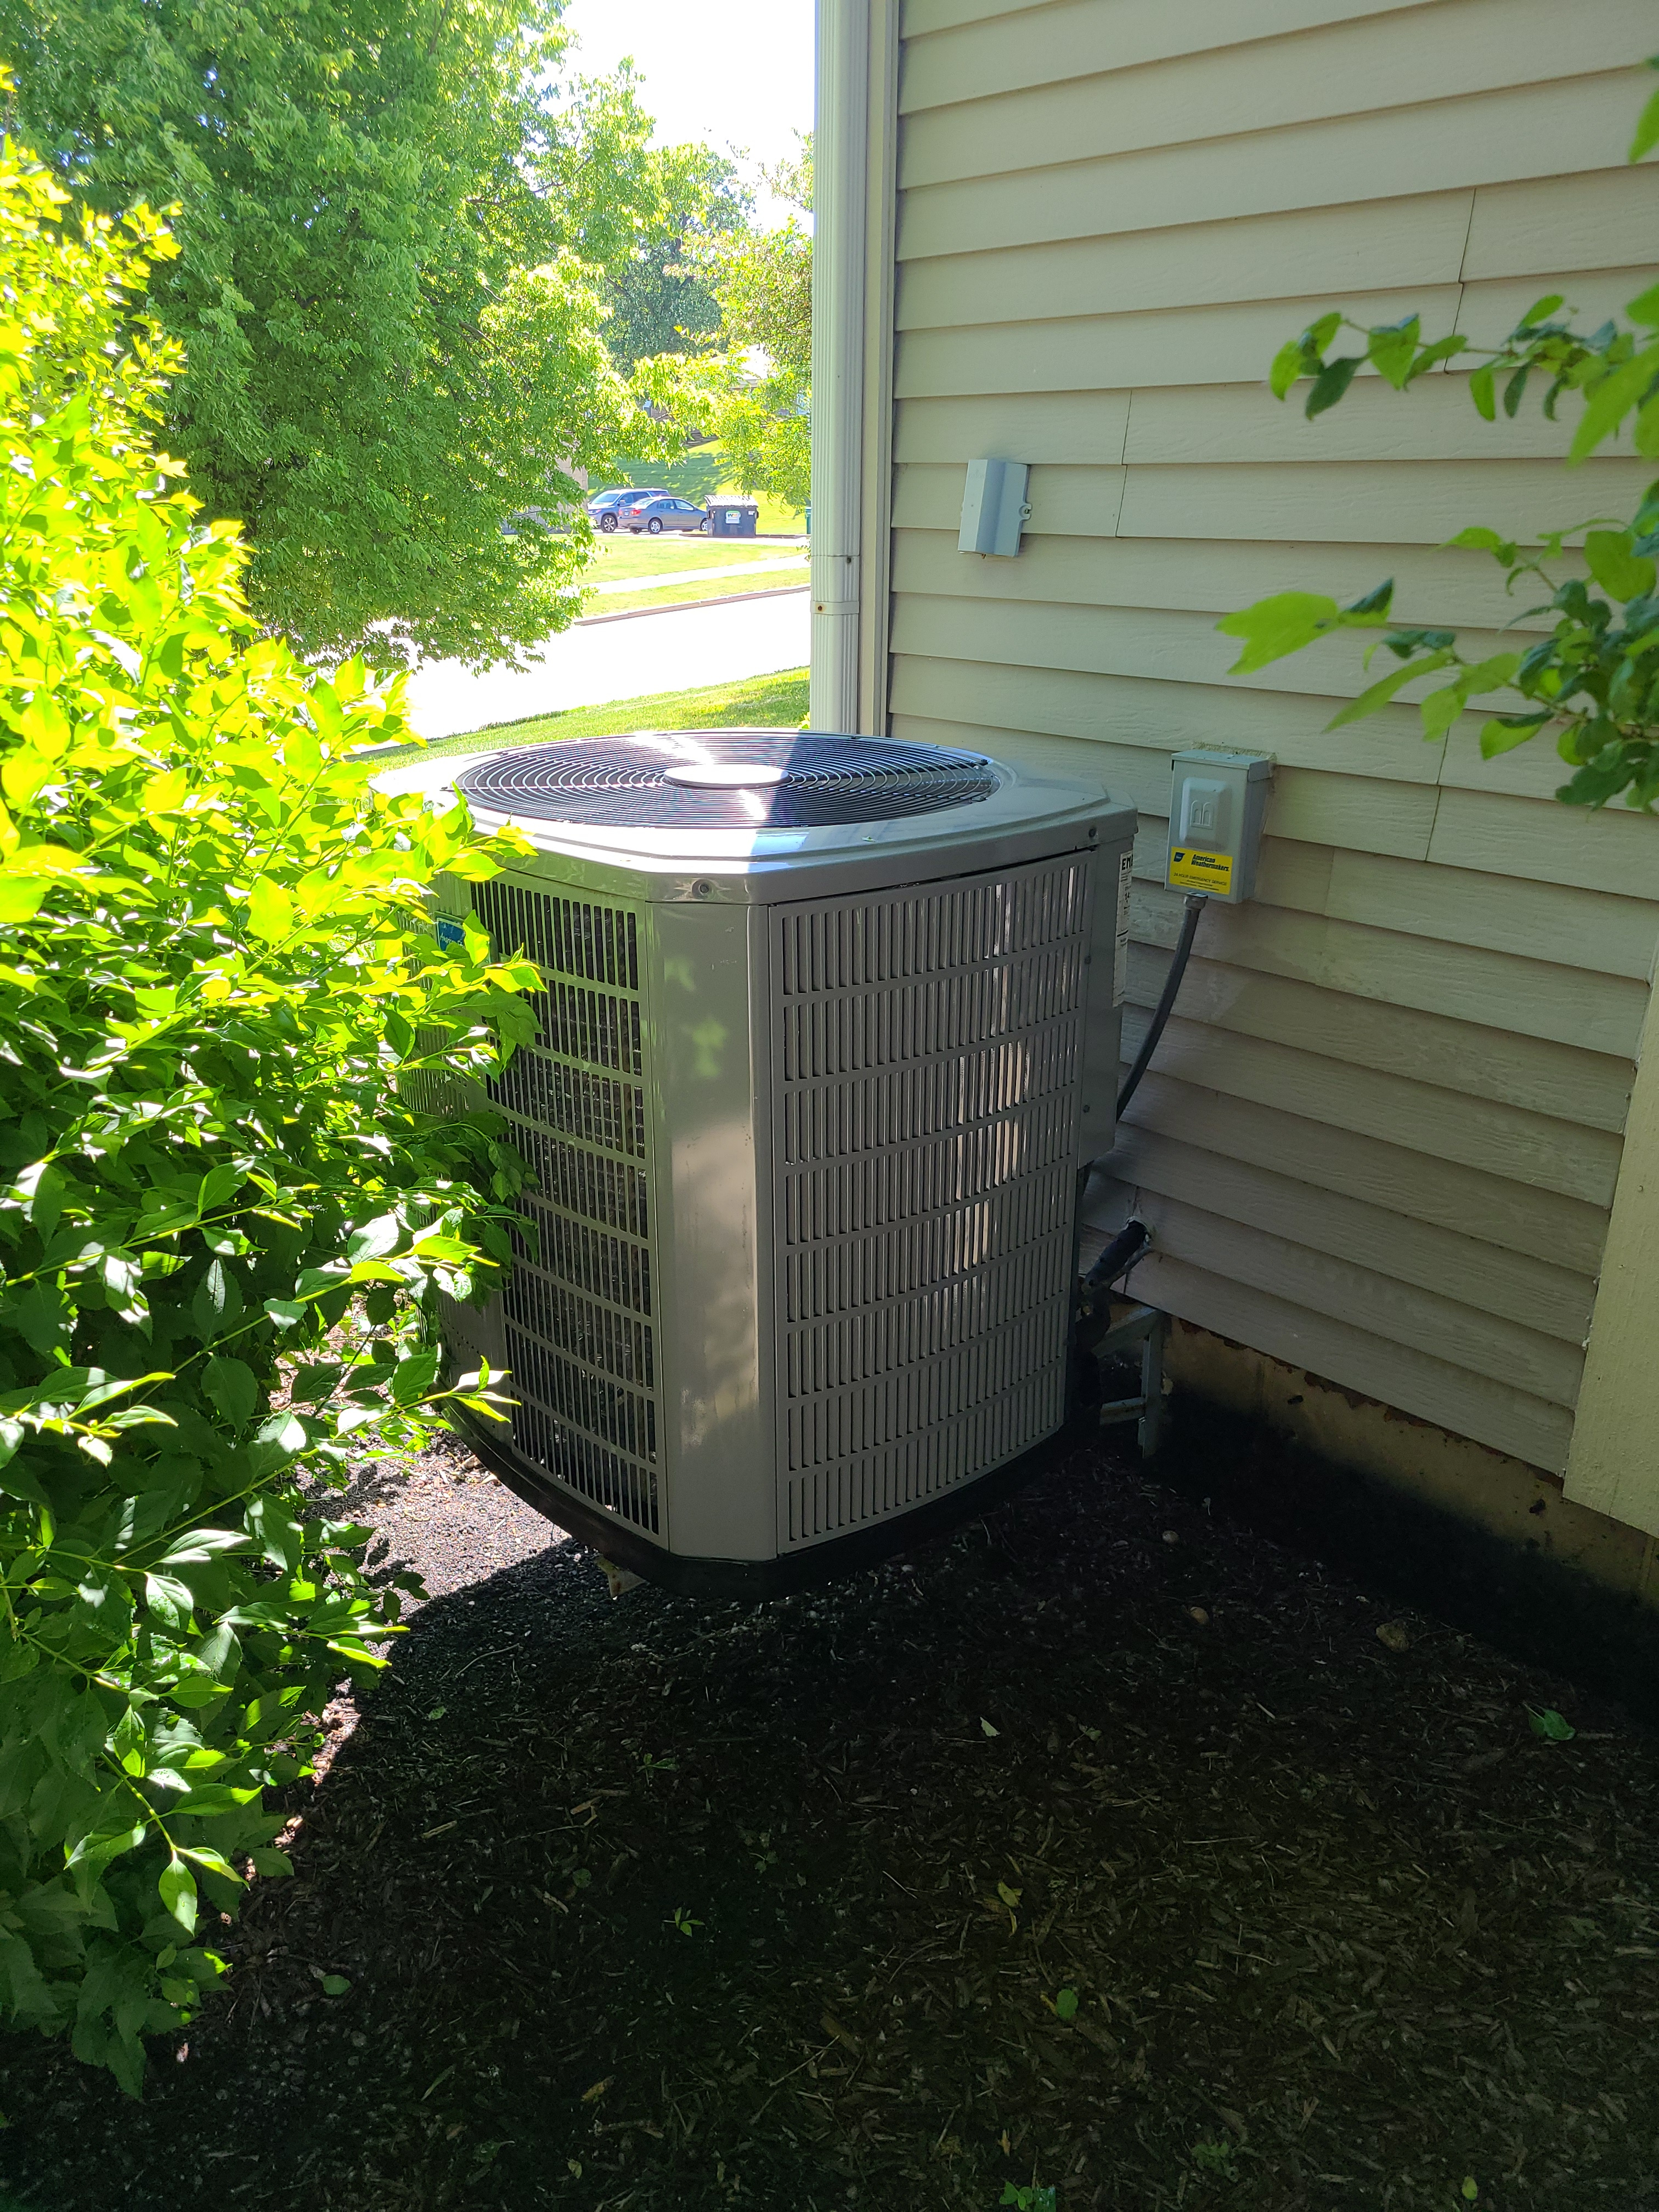 Have confidence that your American Standard will keep you cool this summer and schedule a maintenance with American Weathermakers today.